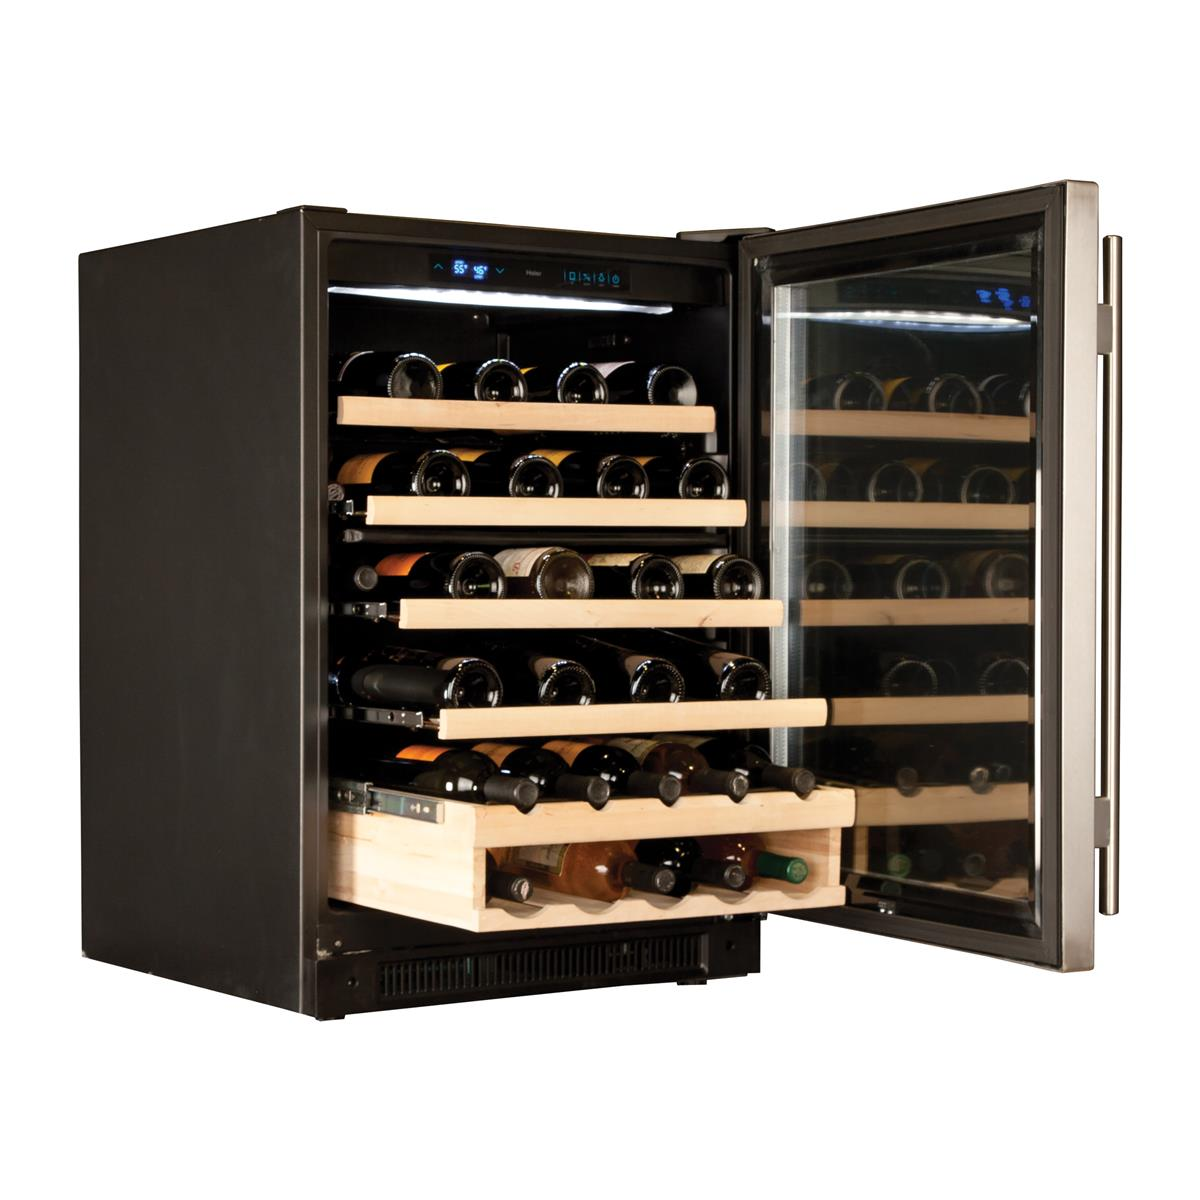 Black Wine Reserves & Beverage Centers WC200GS Un-installed/free-standing